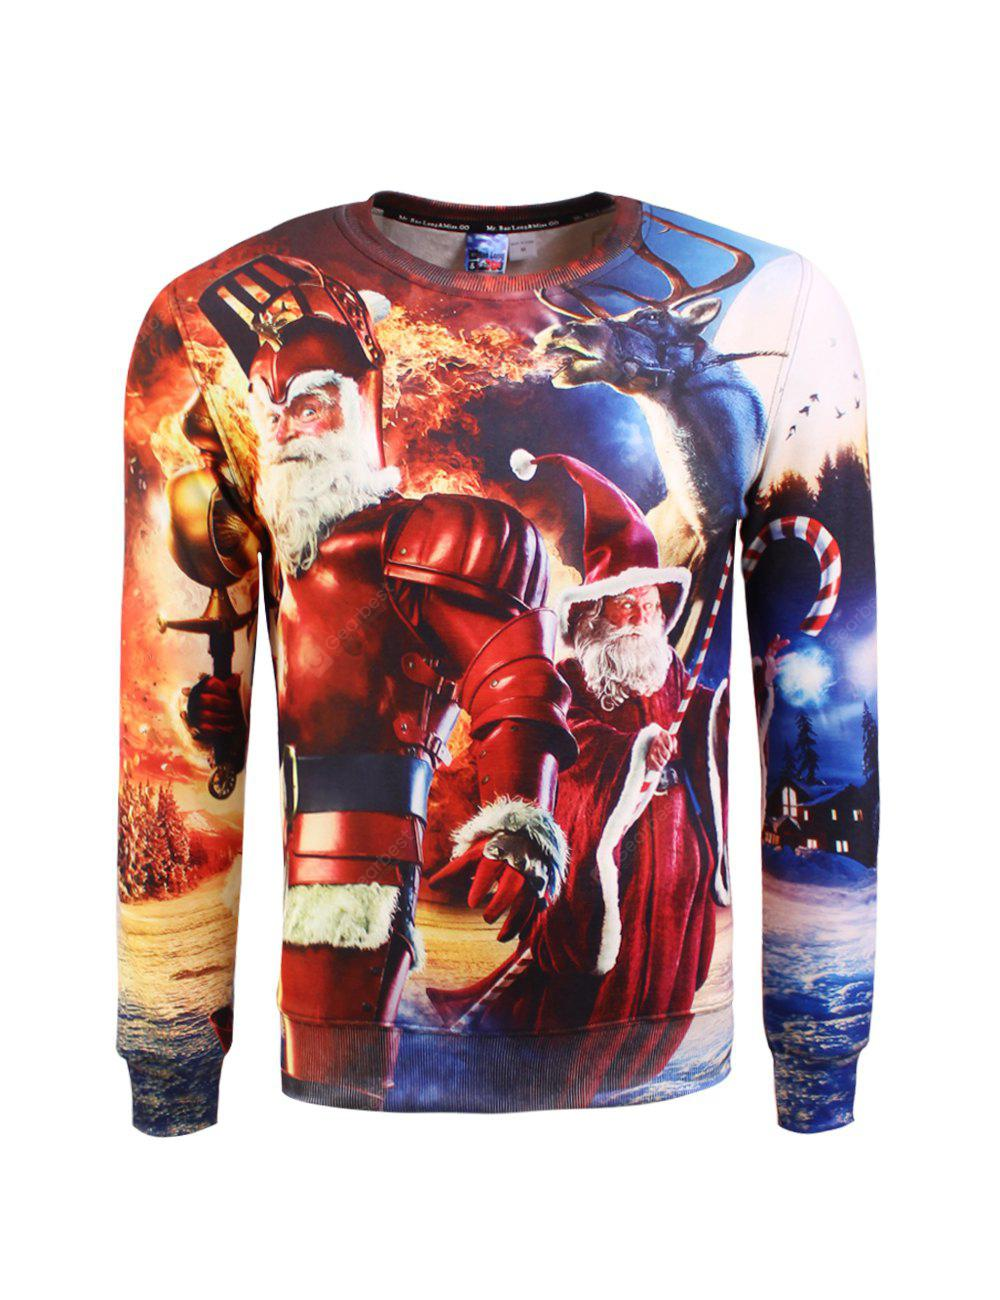 Camisola do Natal Crew Neck Graphic Feio